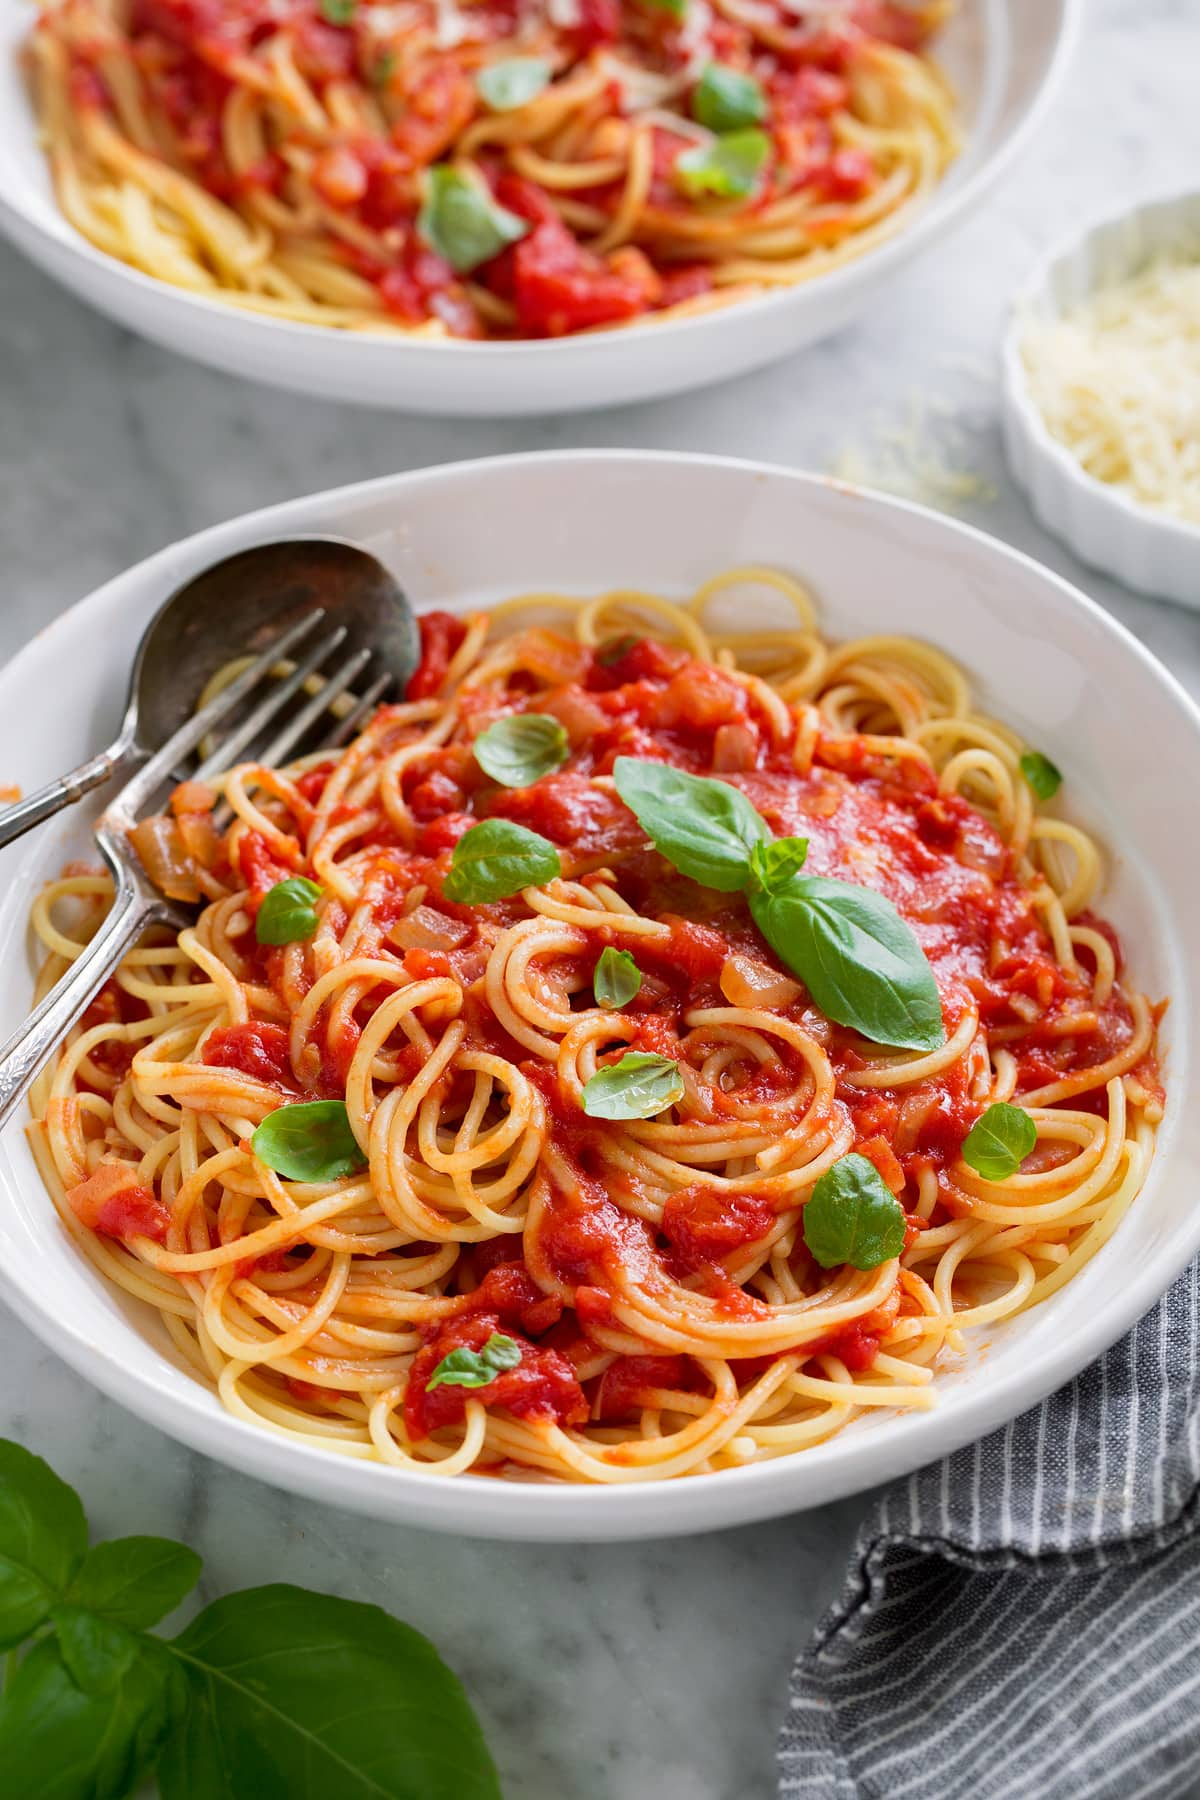 Marinara sauce served tossed with spaghetti, parmesan and fresh basil. Shown in a white pasta bowl.